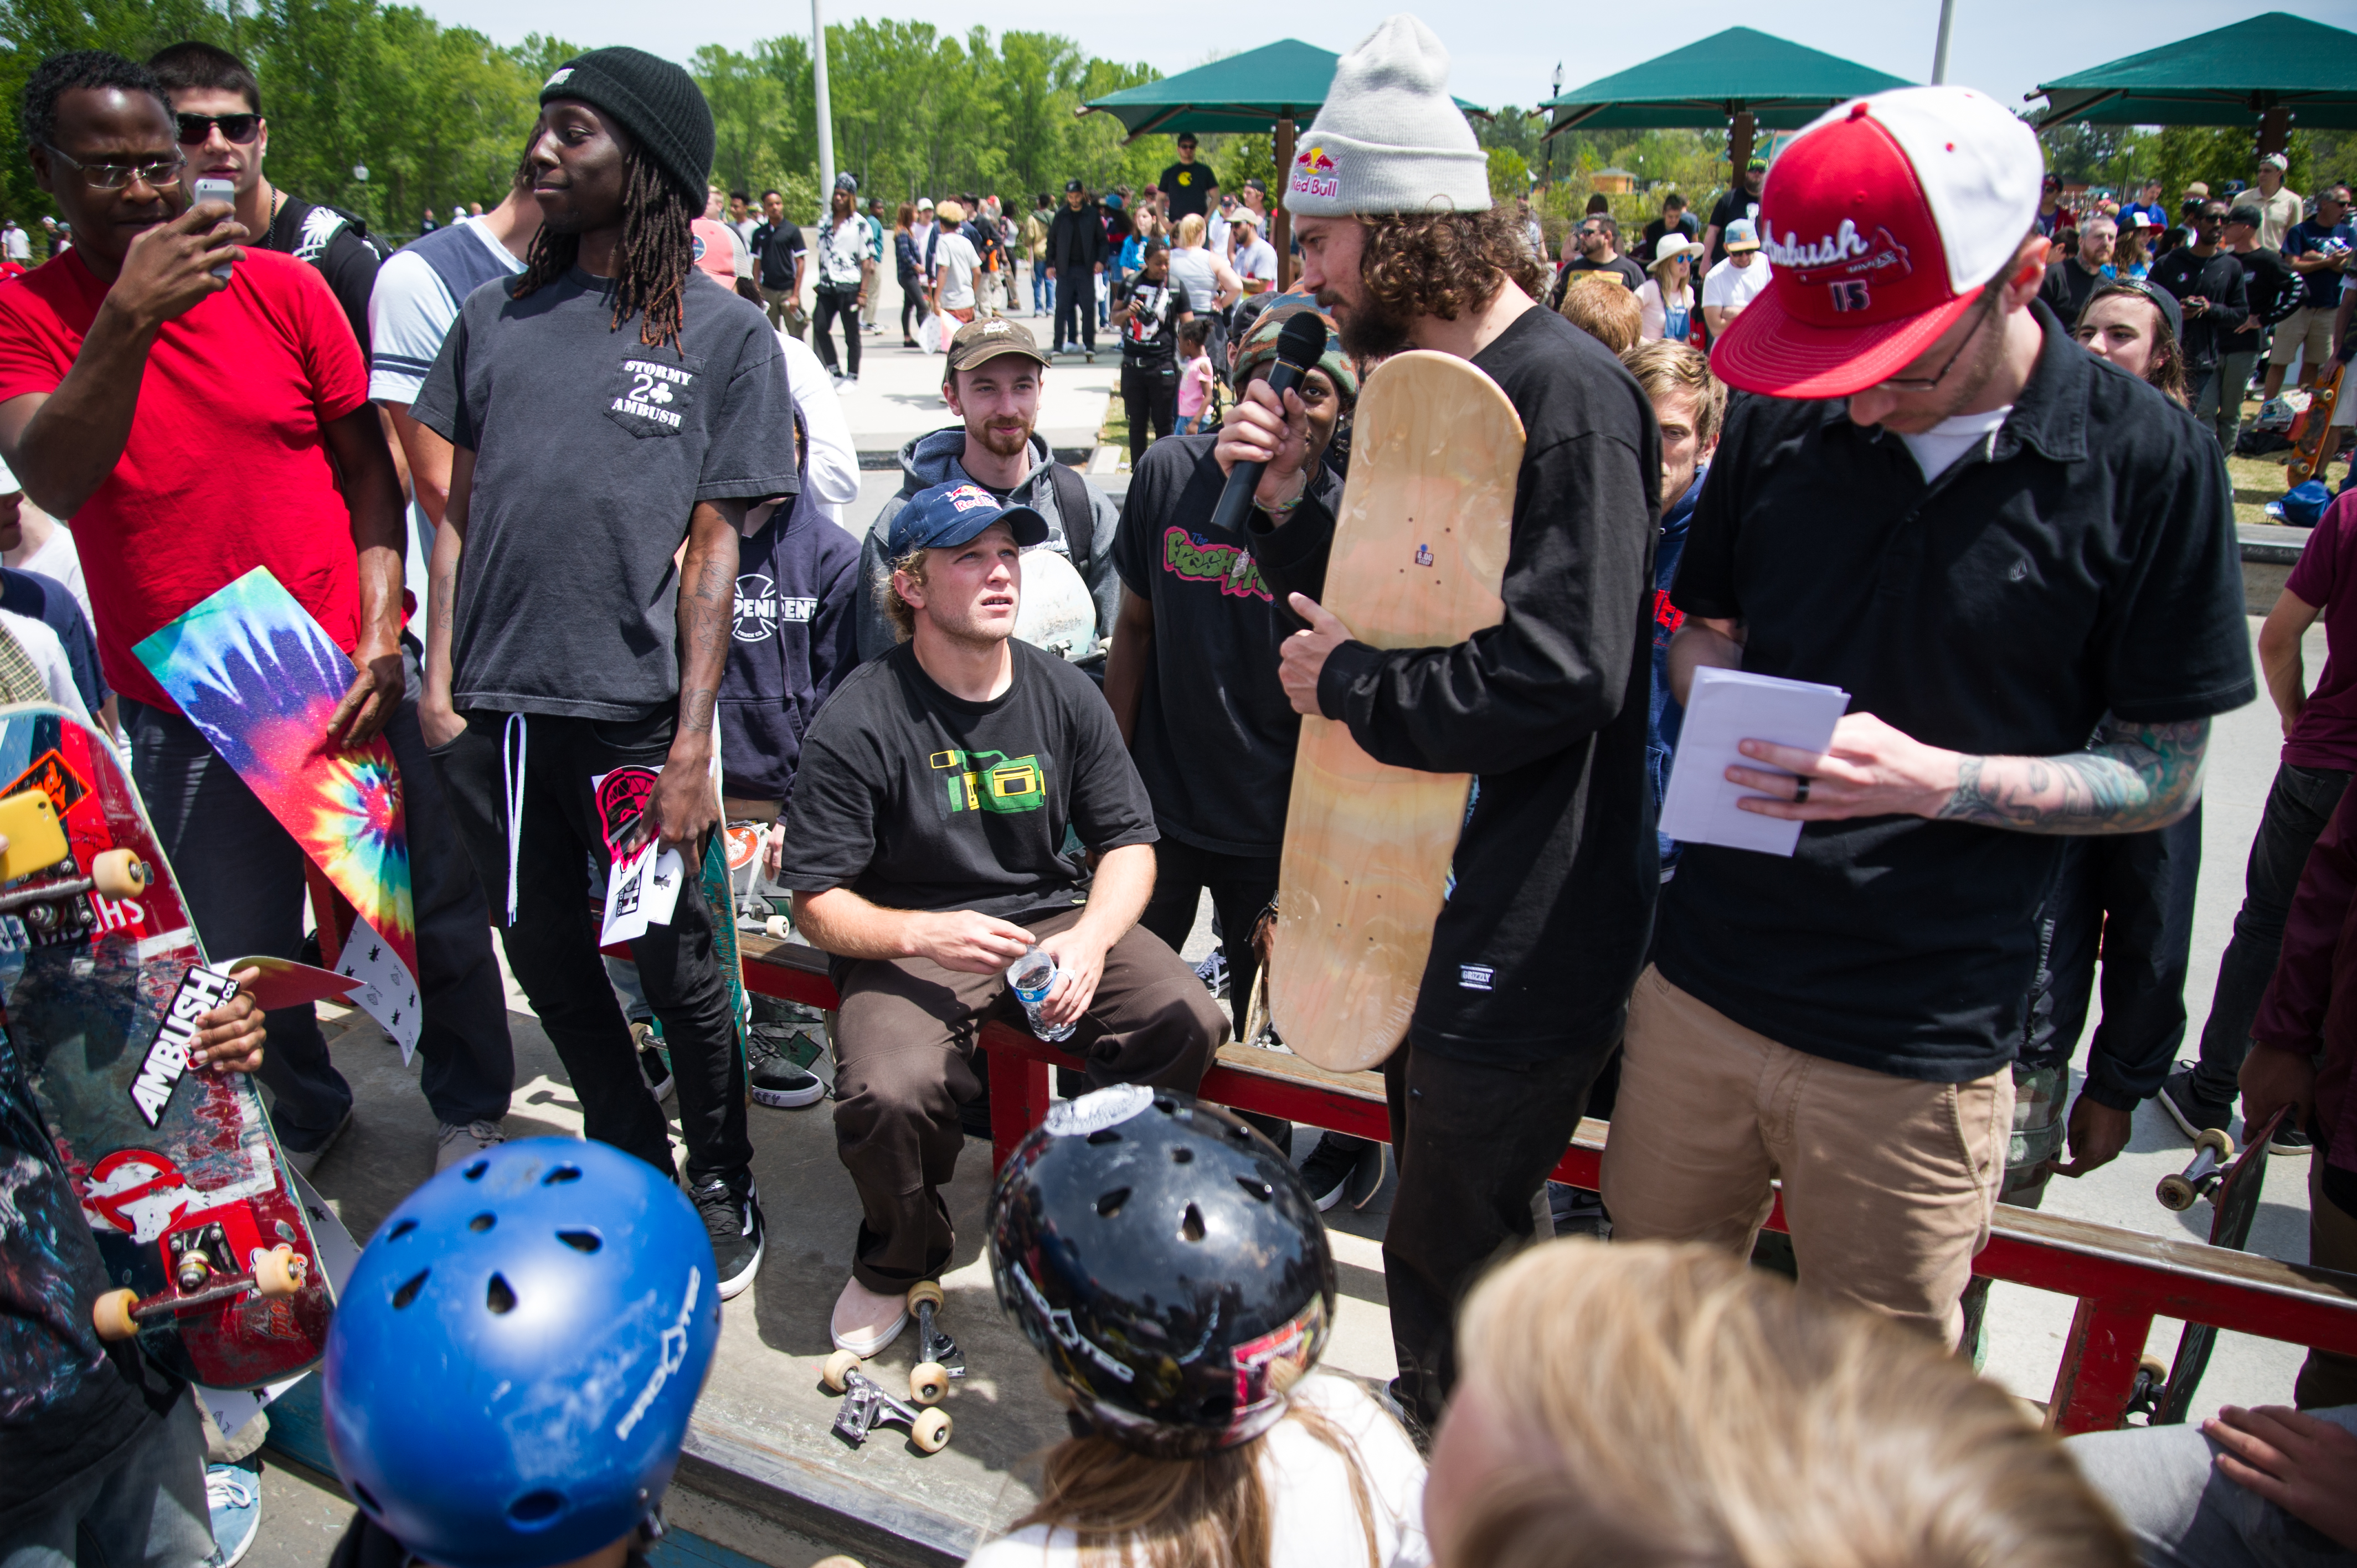 Jamie Foy and Torey Pudwill